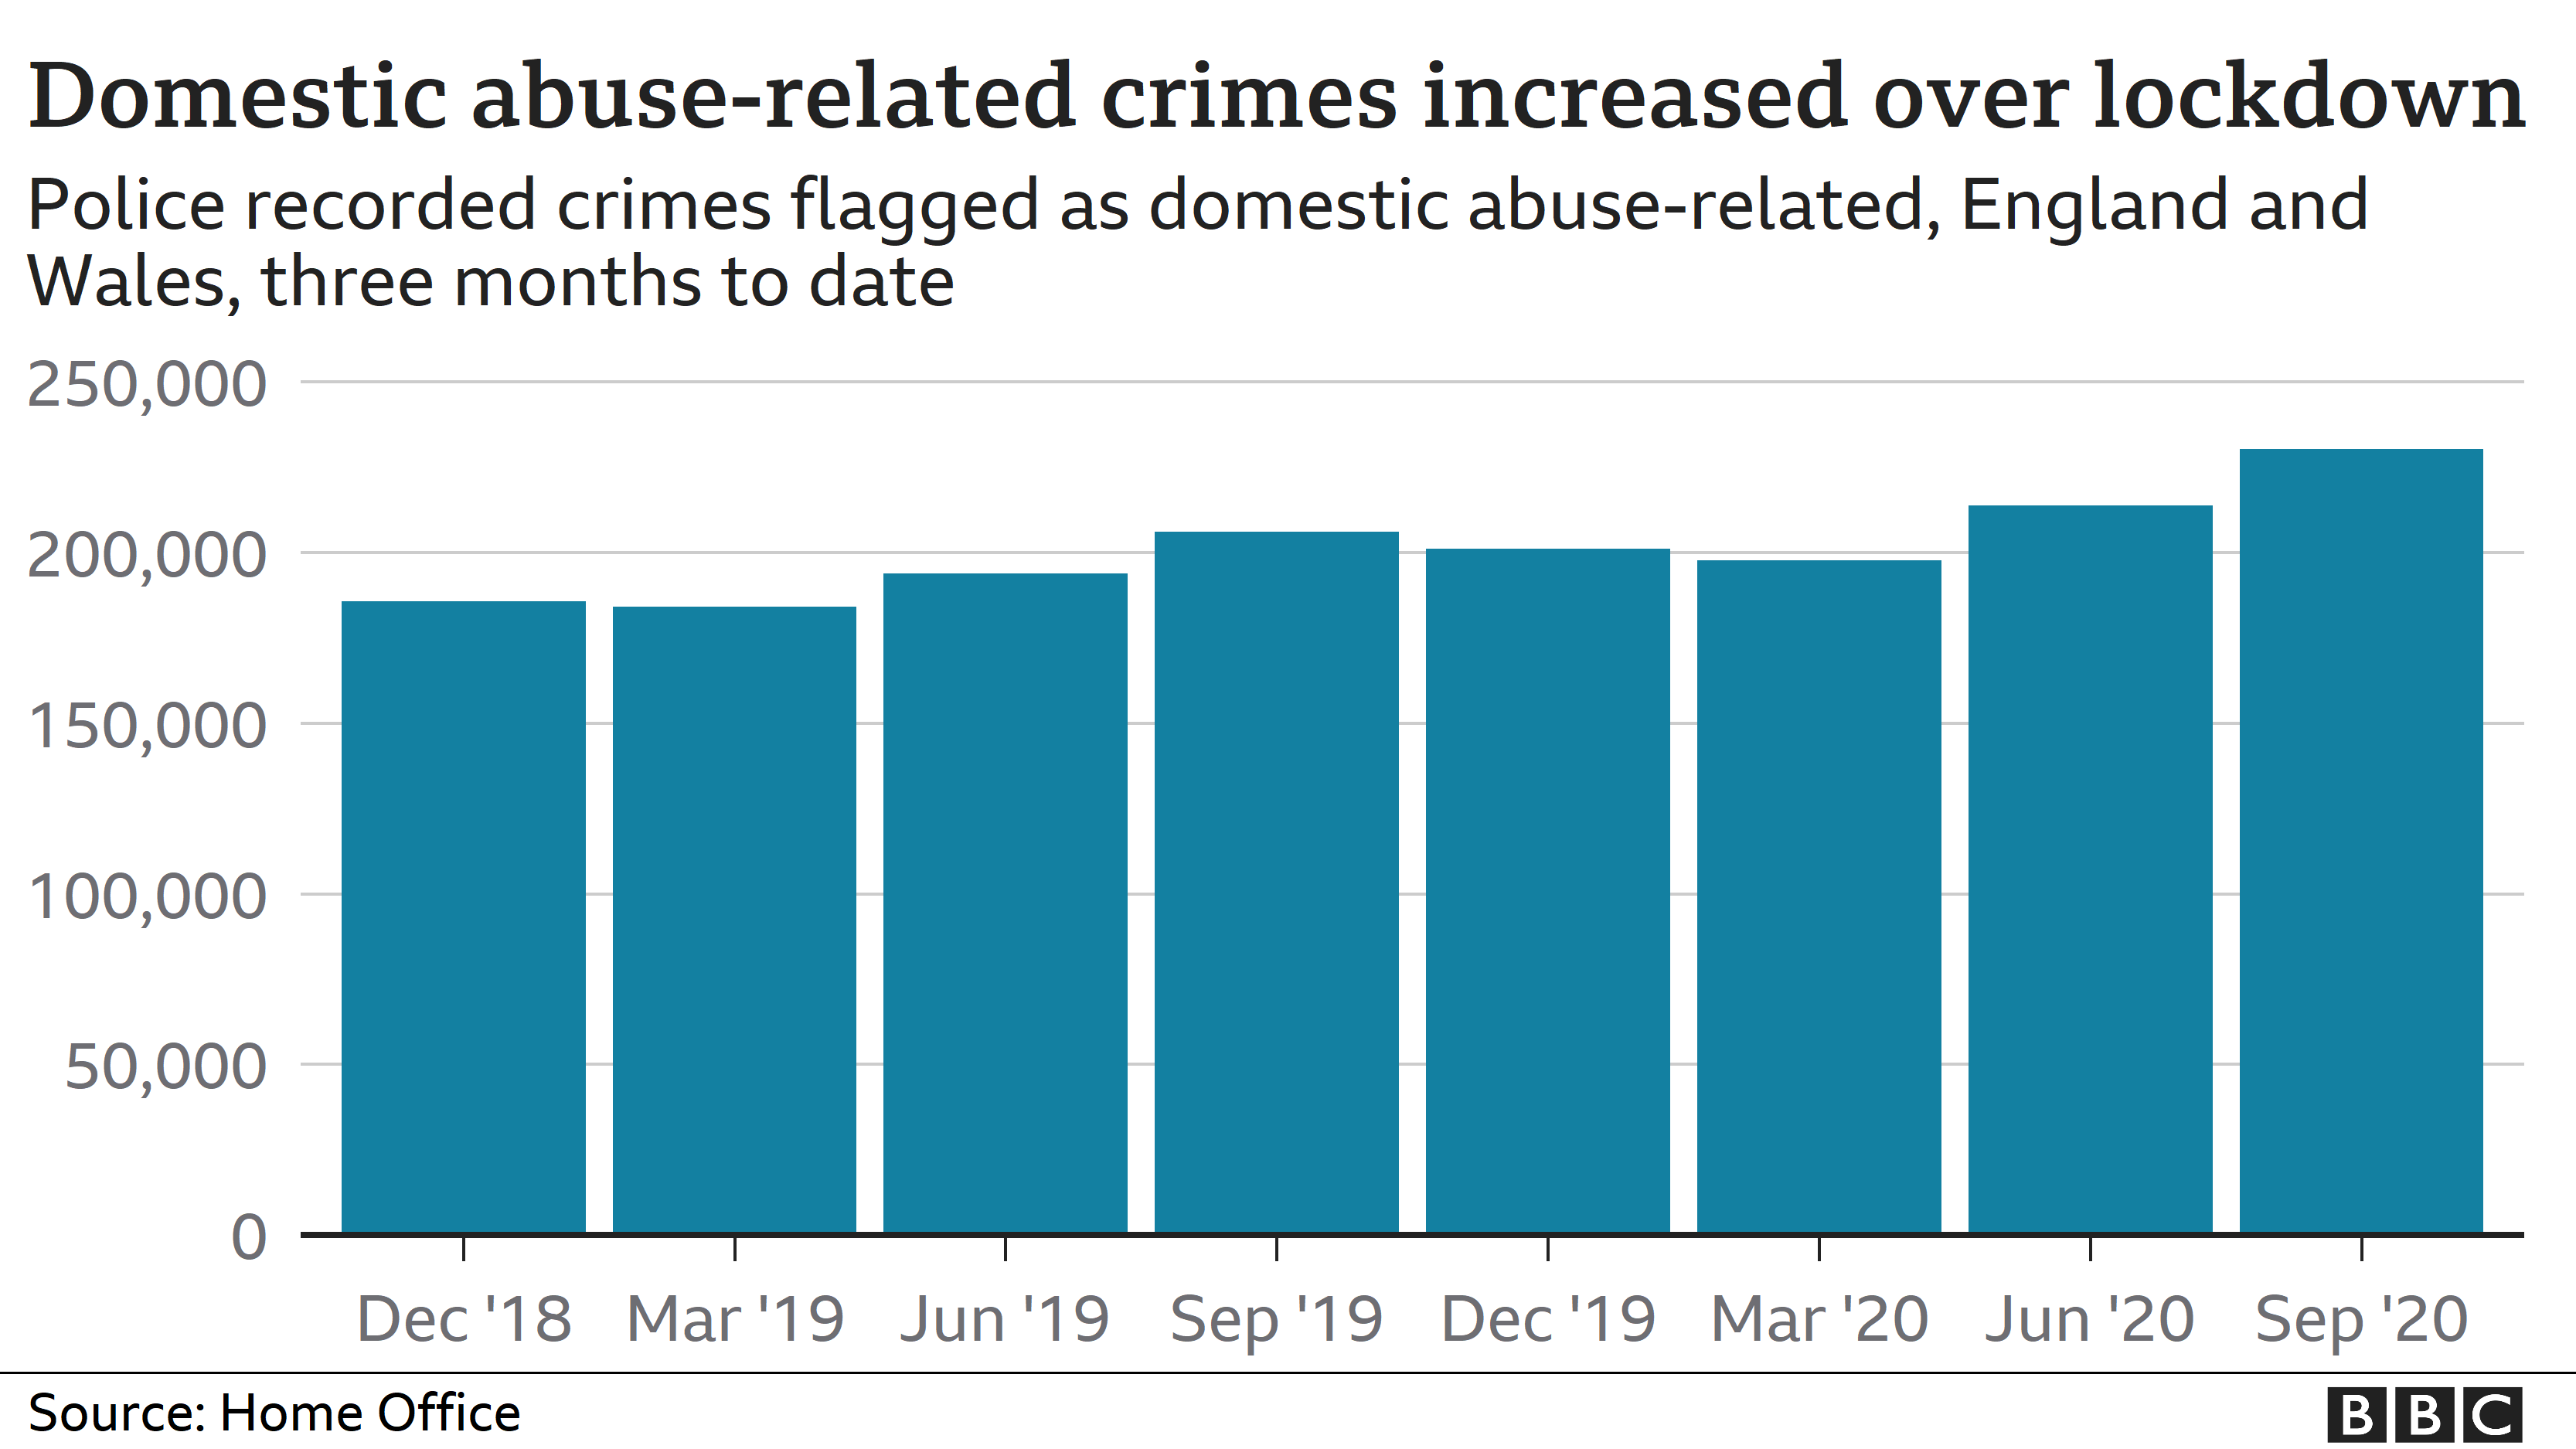 Chart showing the increase in domestic abuse